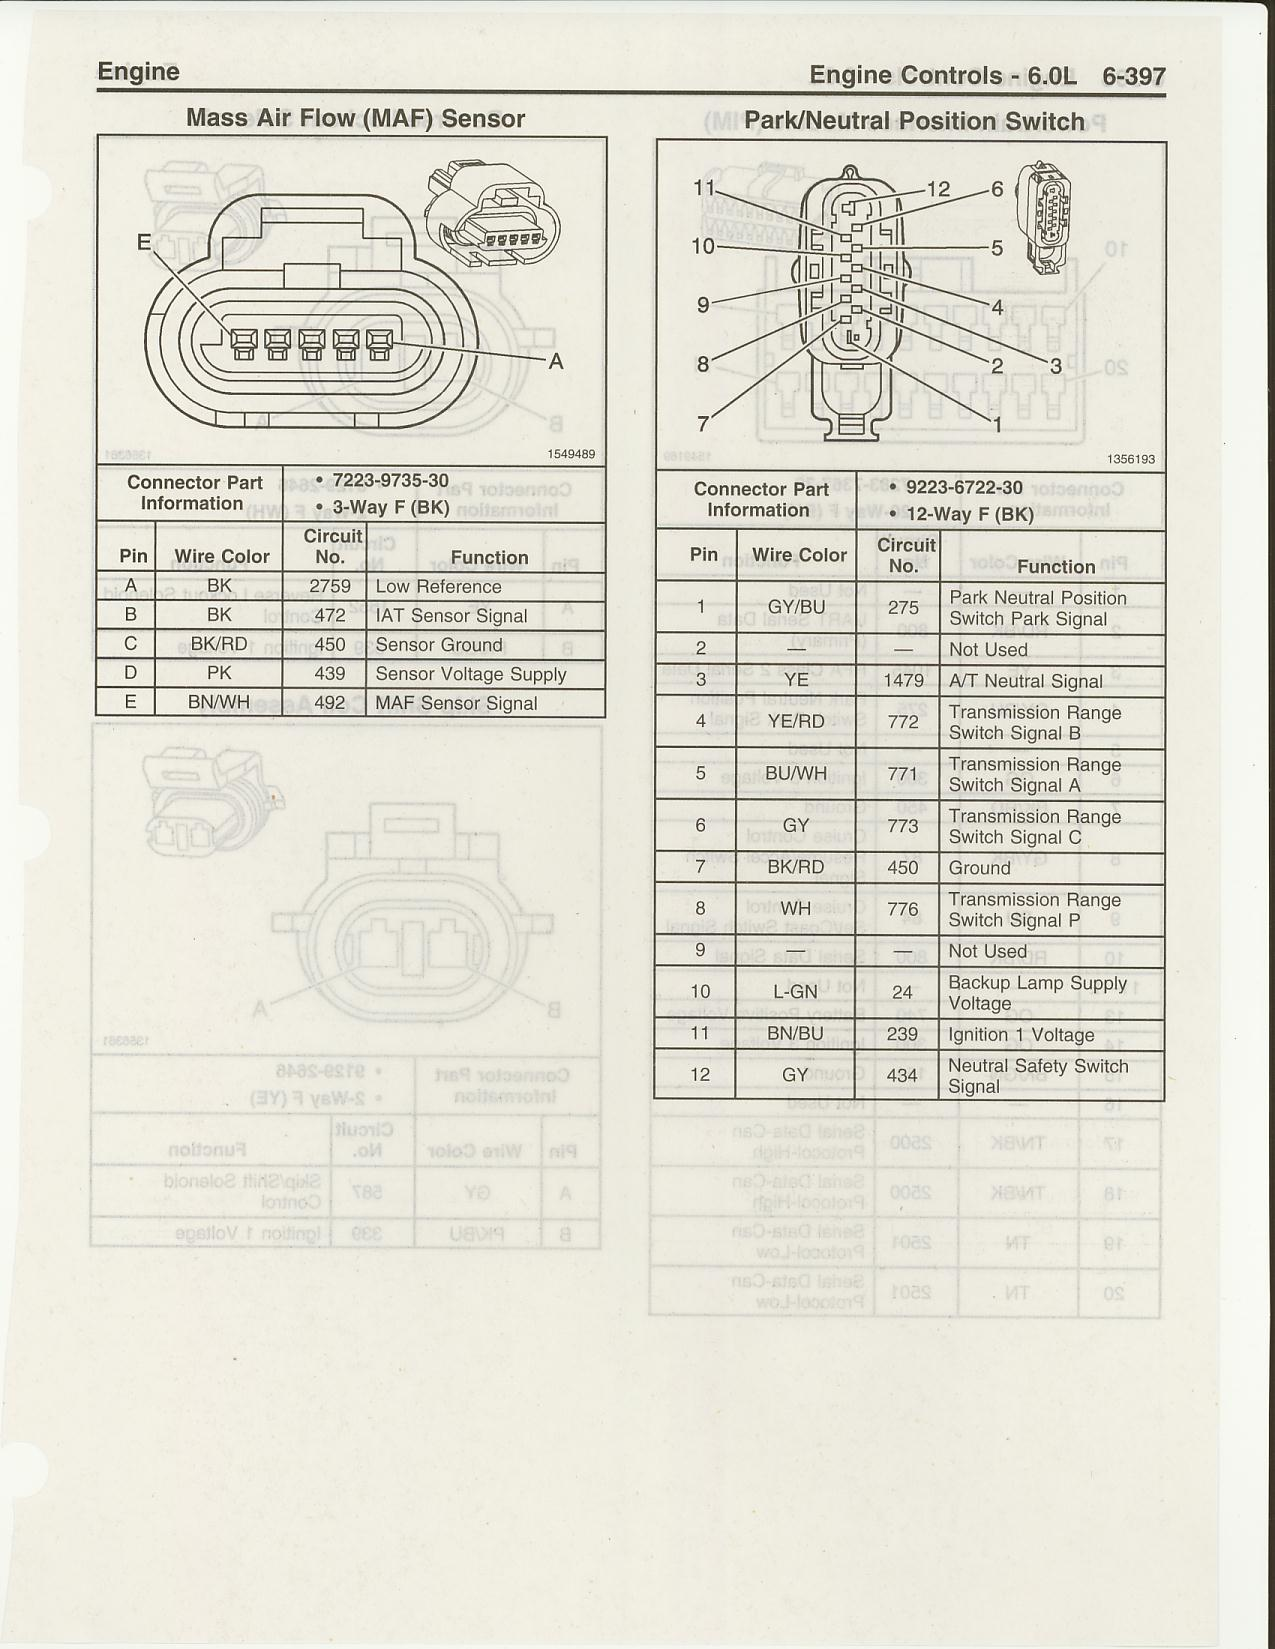 ls7 maf wiring wiring diagram center u2022 rh culinaryco co Audi MAF Sensor Wiring Diagram Ford Electrical Wiring Diagrams Iat MAF Sensor 2005 Ford Taurus 3 0